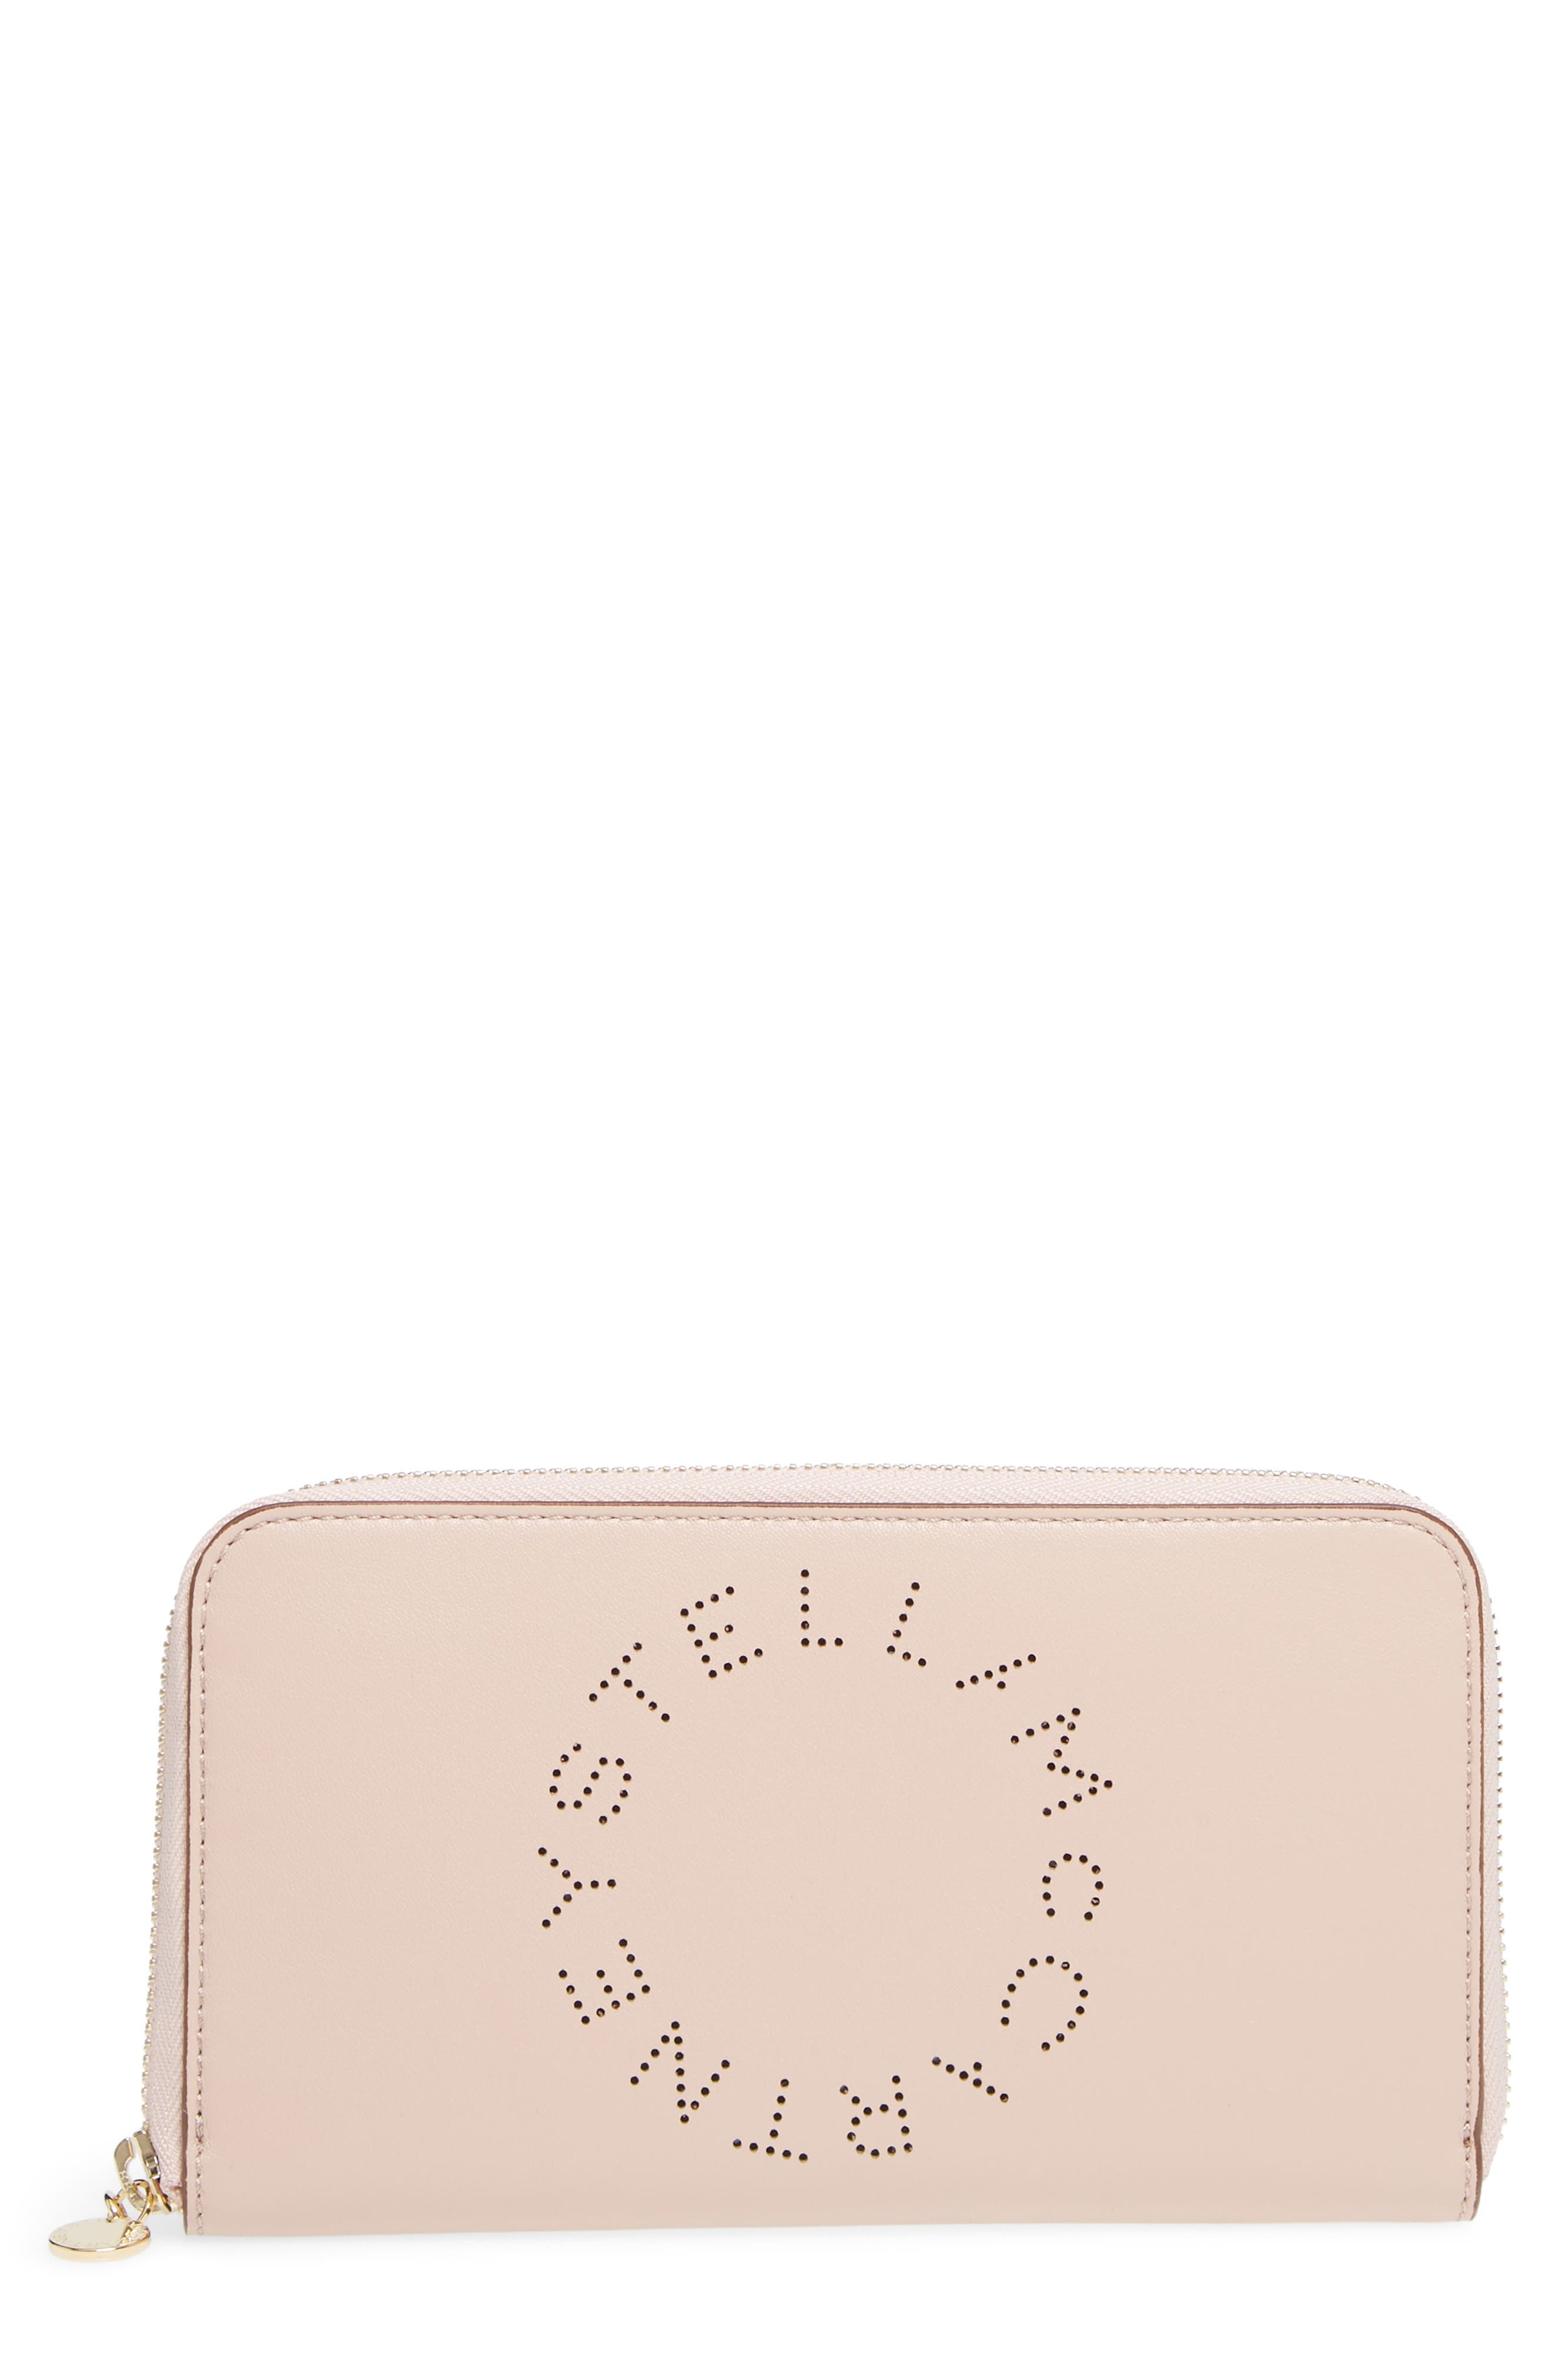 Main Image - Stella McCartney Alter Nappa Perforated Logo Faux Leather Wallet